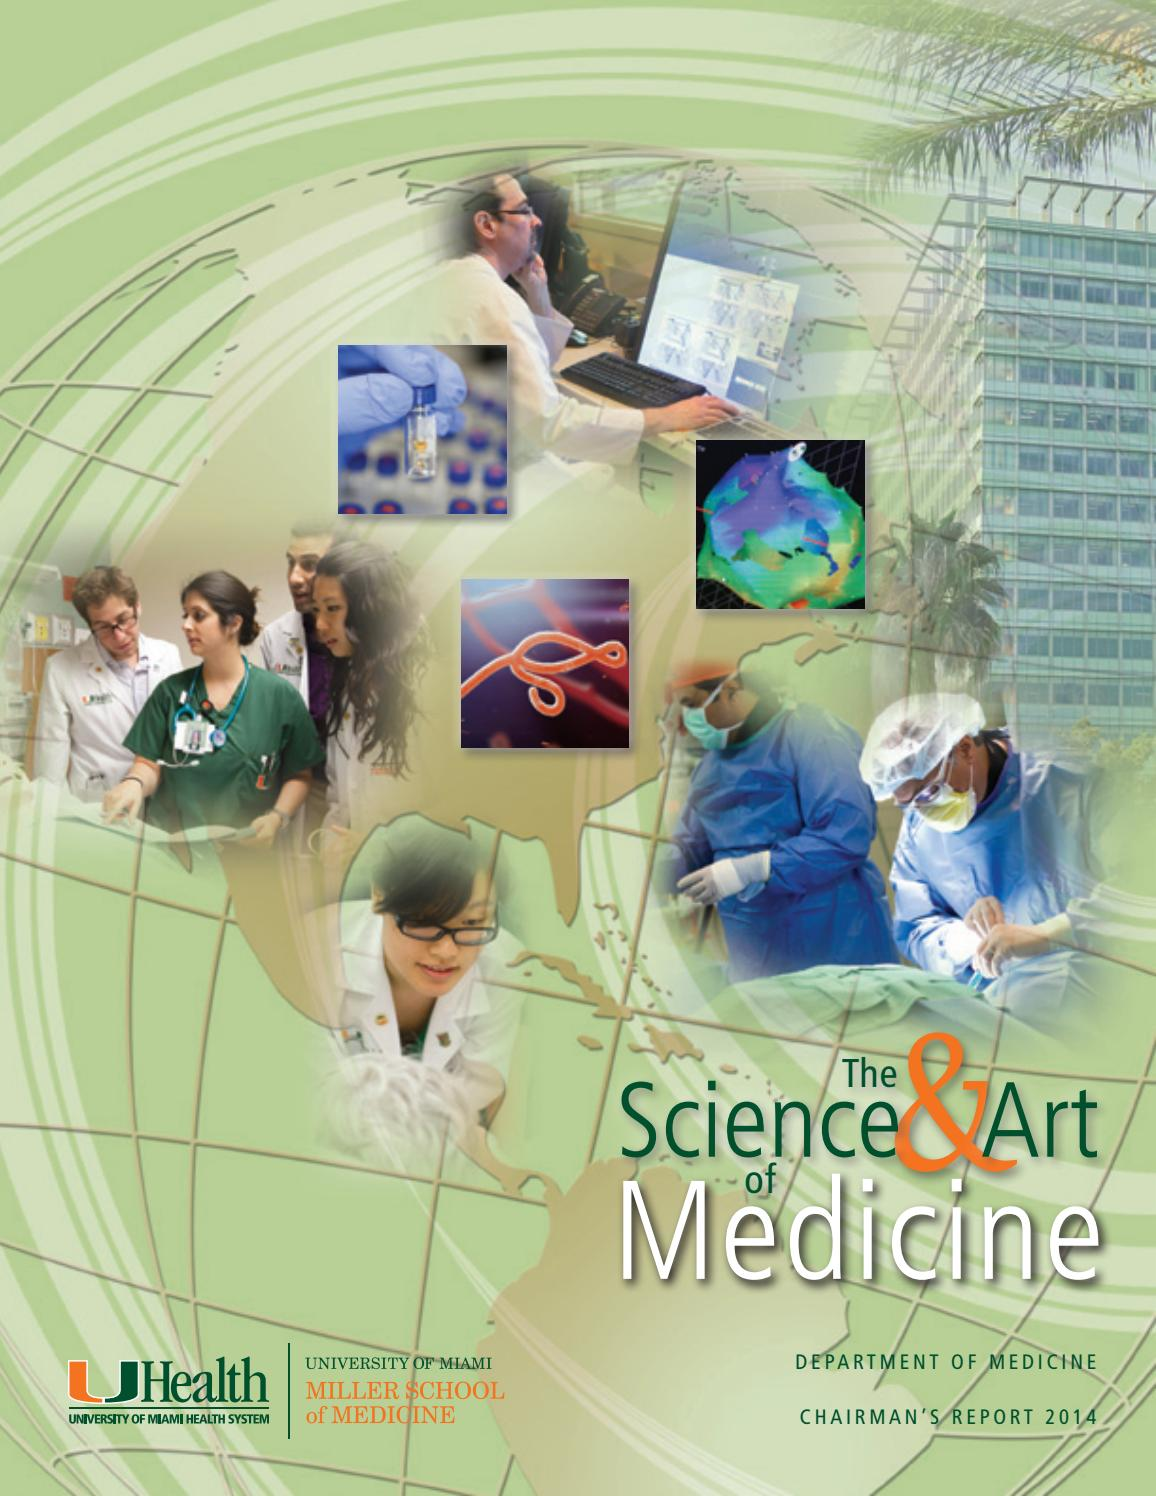 Department of Medicine Annual Report 2014 by University of